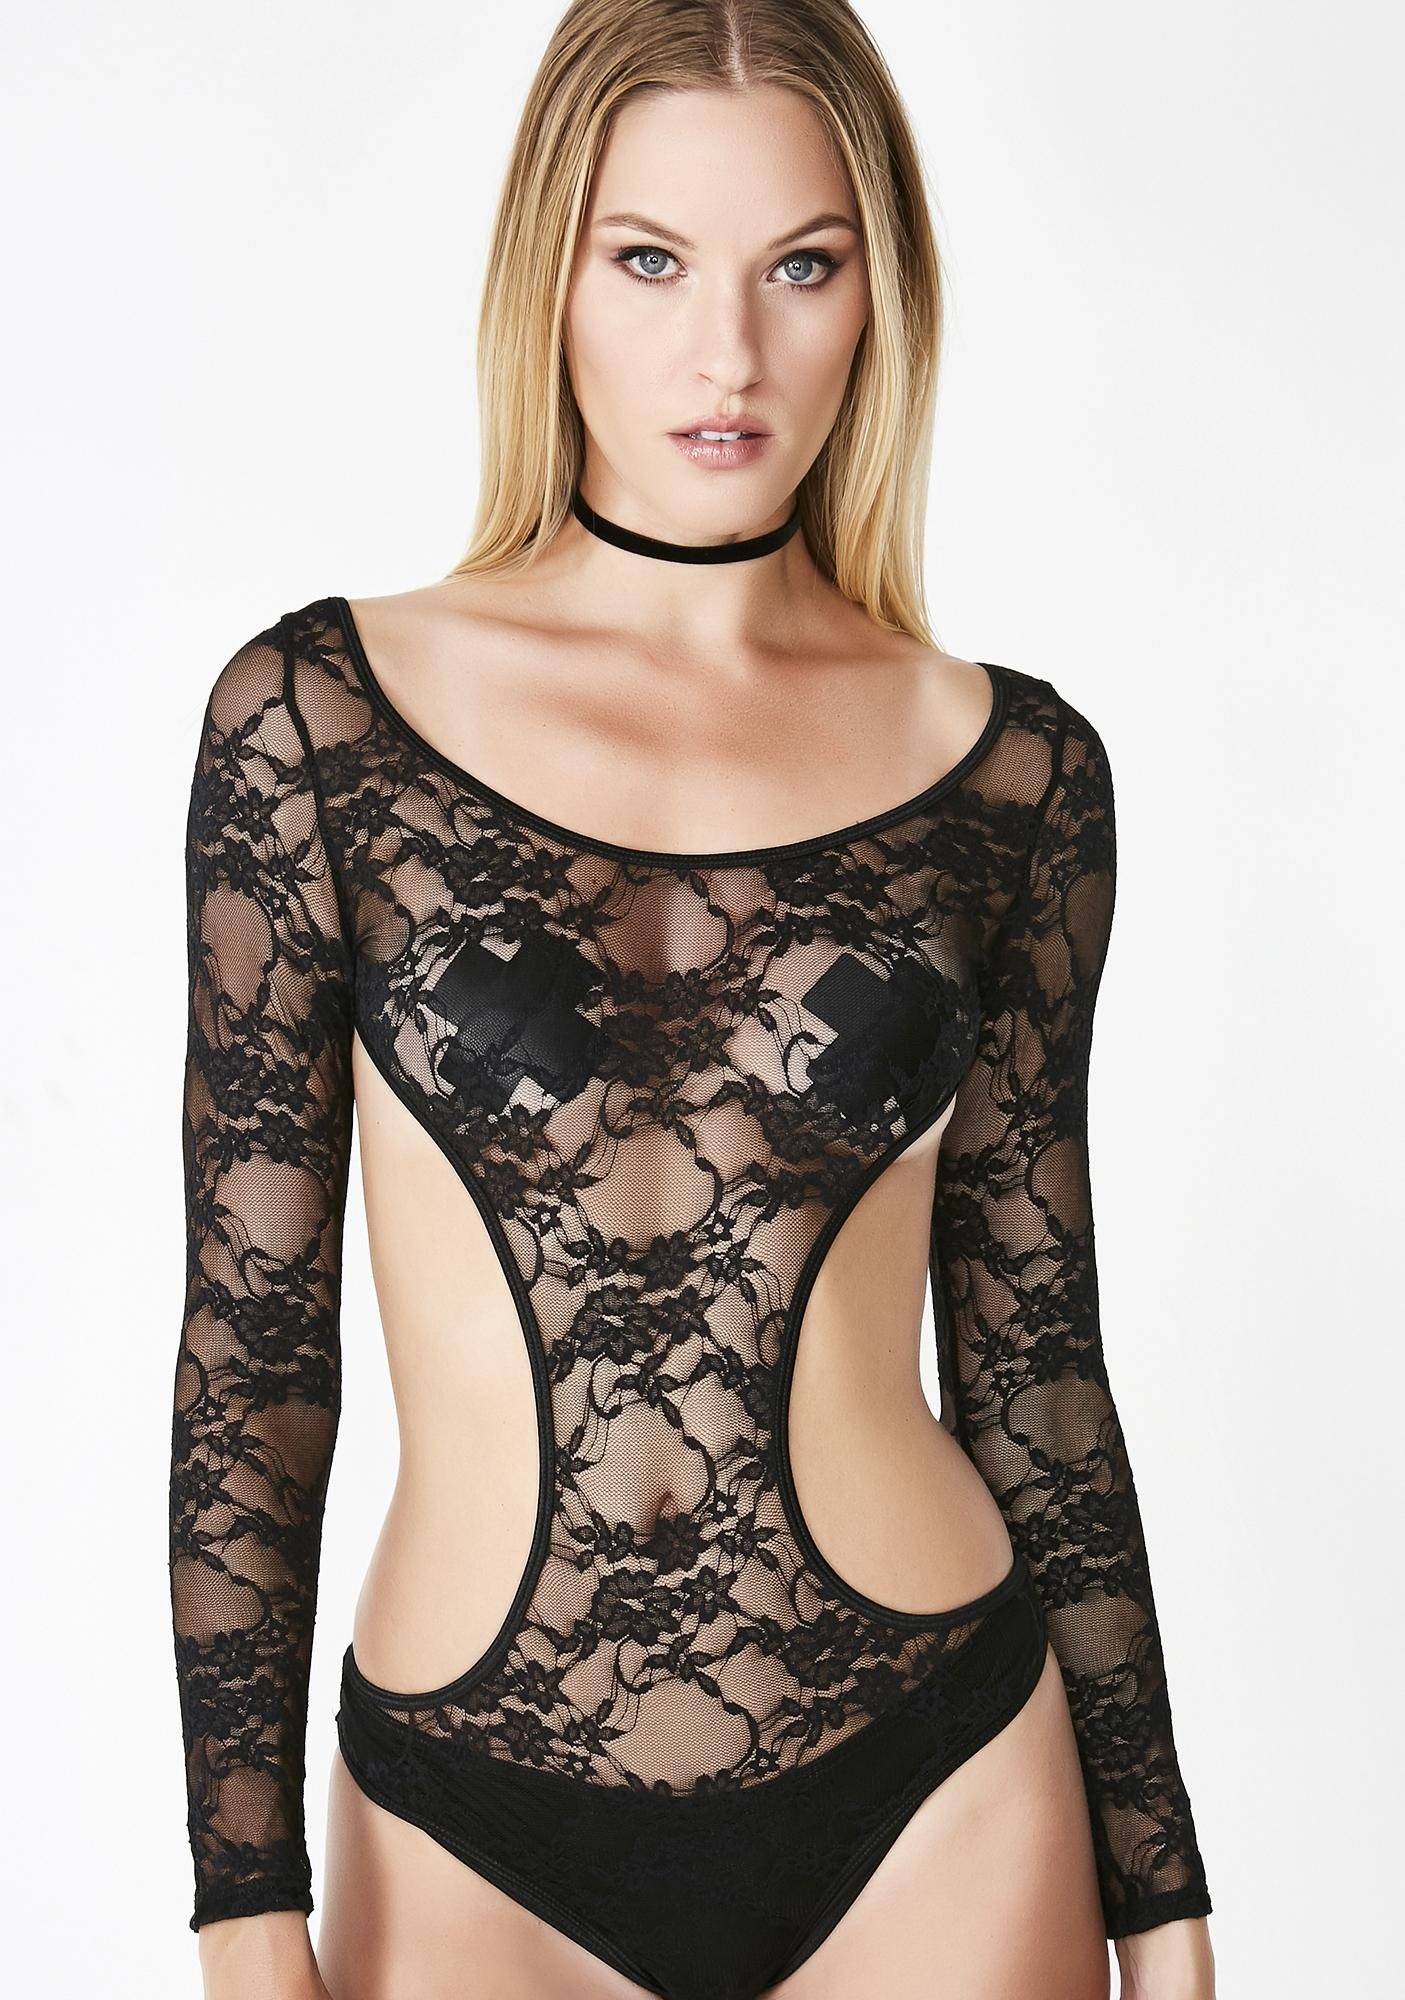 Cut Out Black Lace Bodysuit  277c29e5bfd